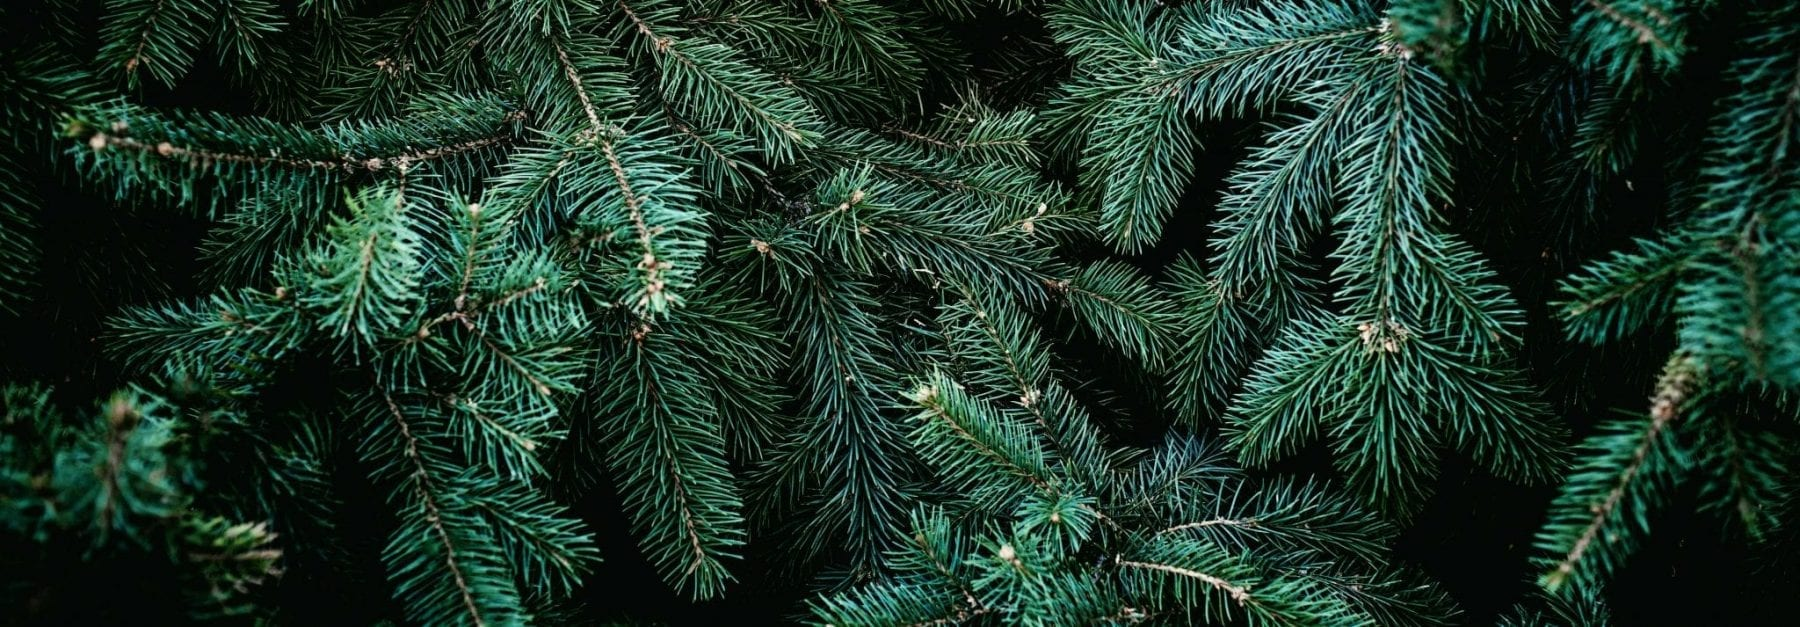 Christmas tree branches that can contain bugs